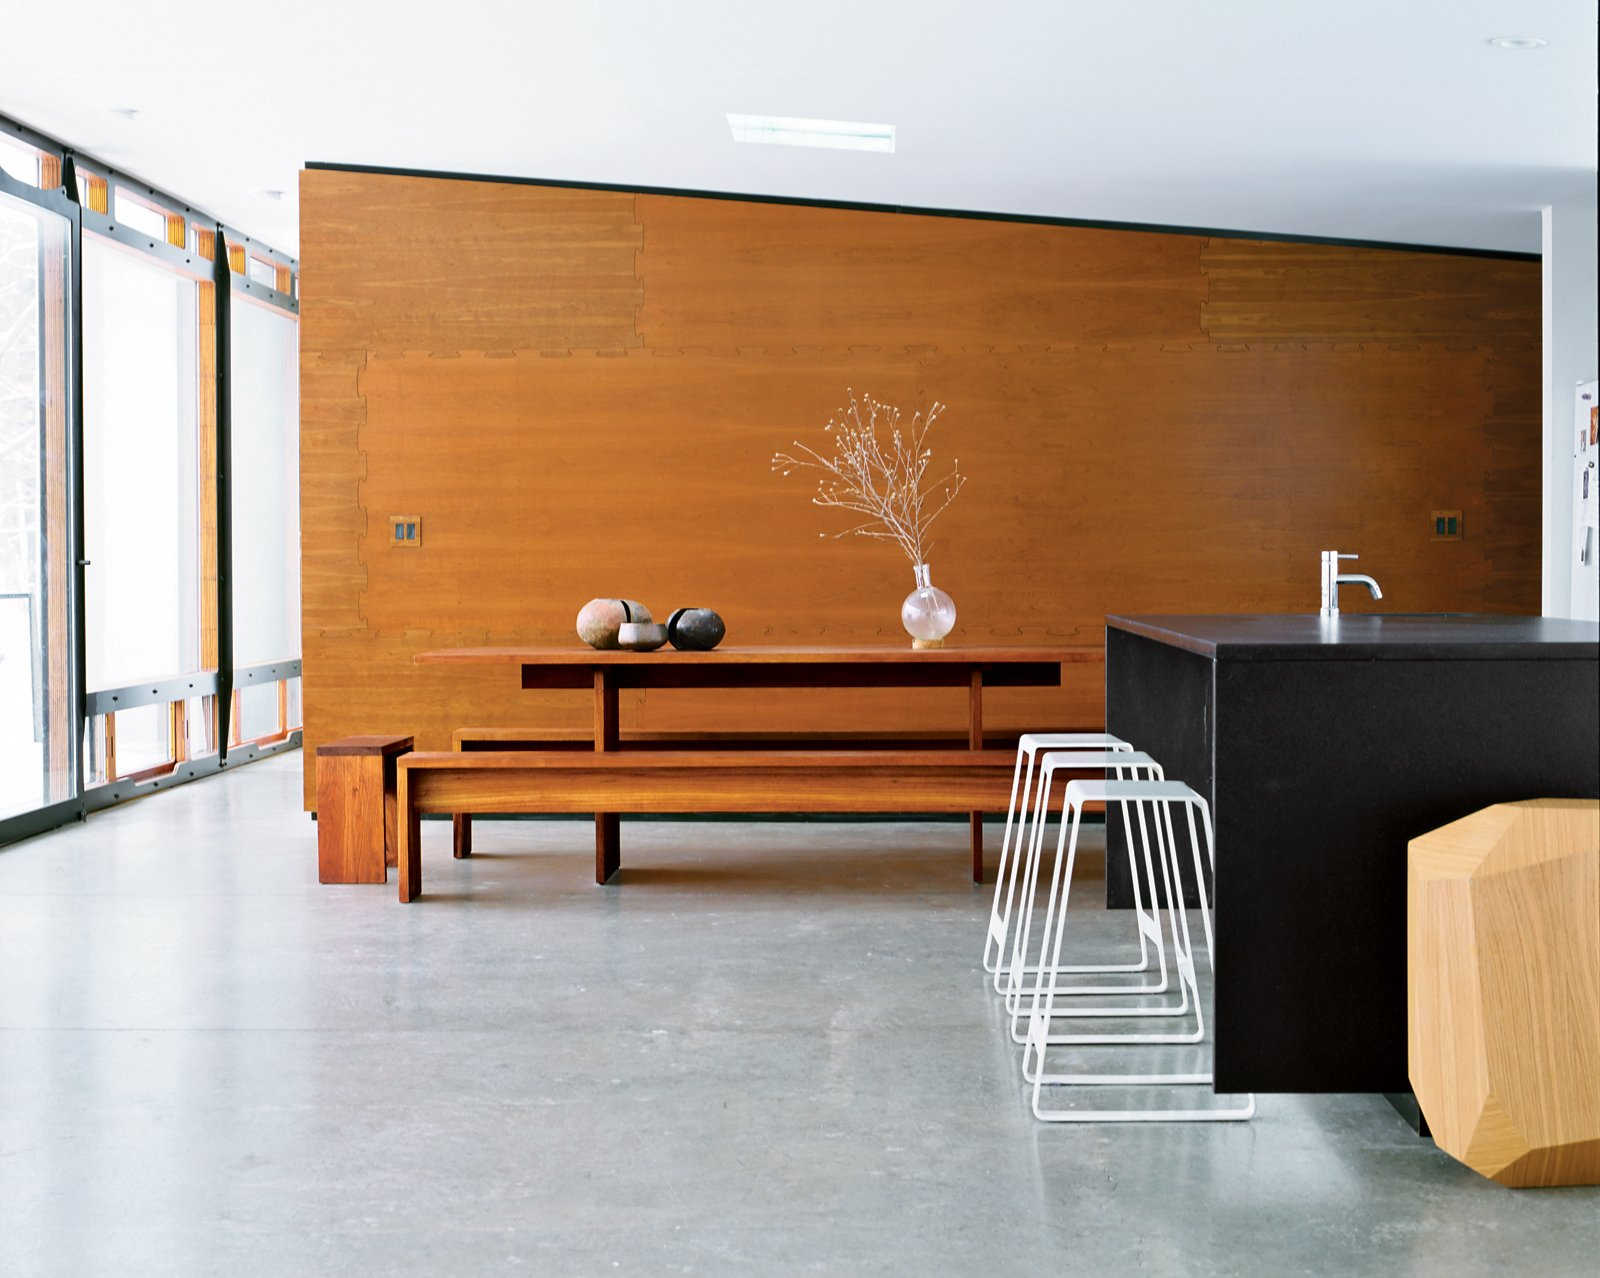 Dining Room, Bench, and Table The table in the dining area was found in Venice, California, and the geometric table is a prototype by Arik Levy.  Photo 5 of 12 in A Hybrid Prefab Home in Upstate New York from Interior Designers Speak: 18 Common Design Mistakes to Avoid